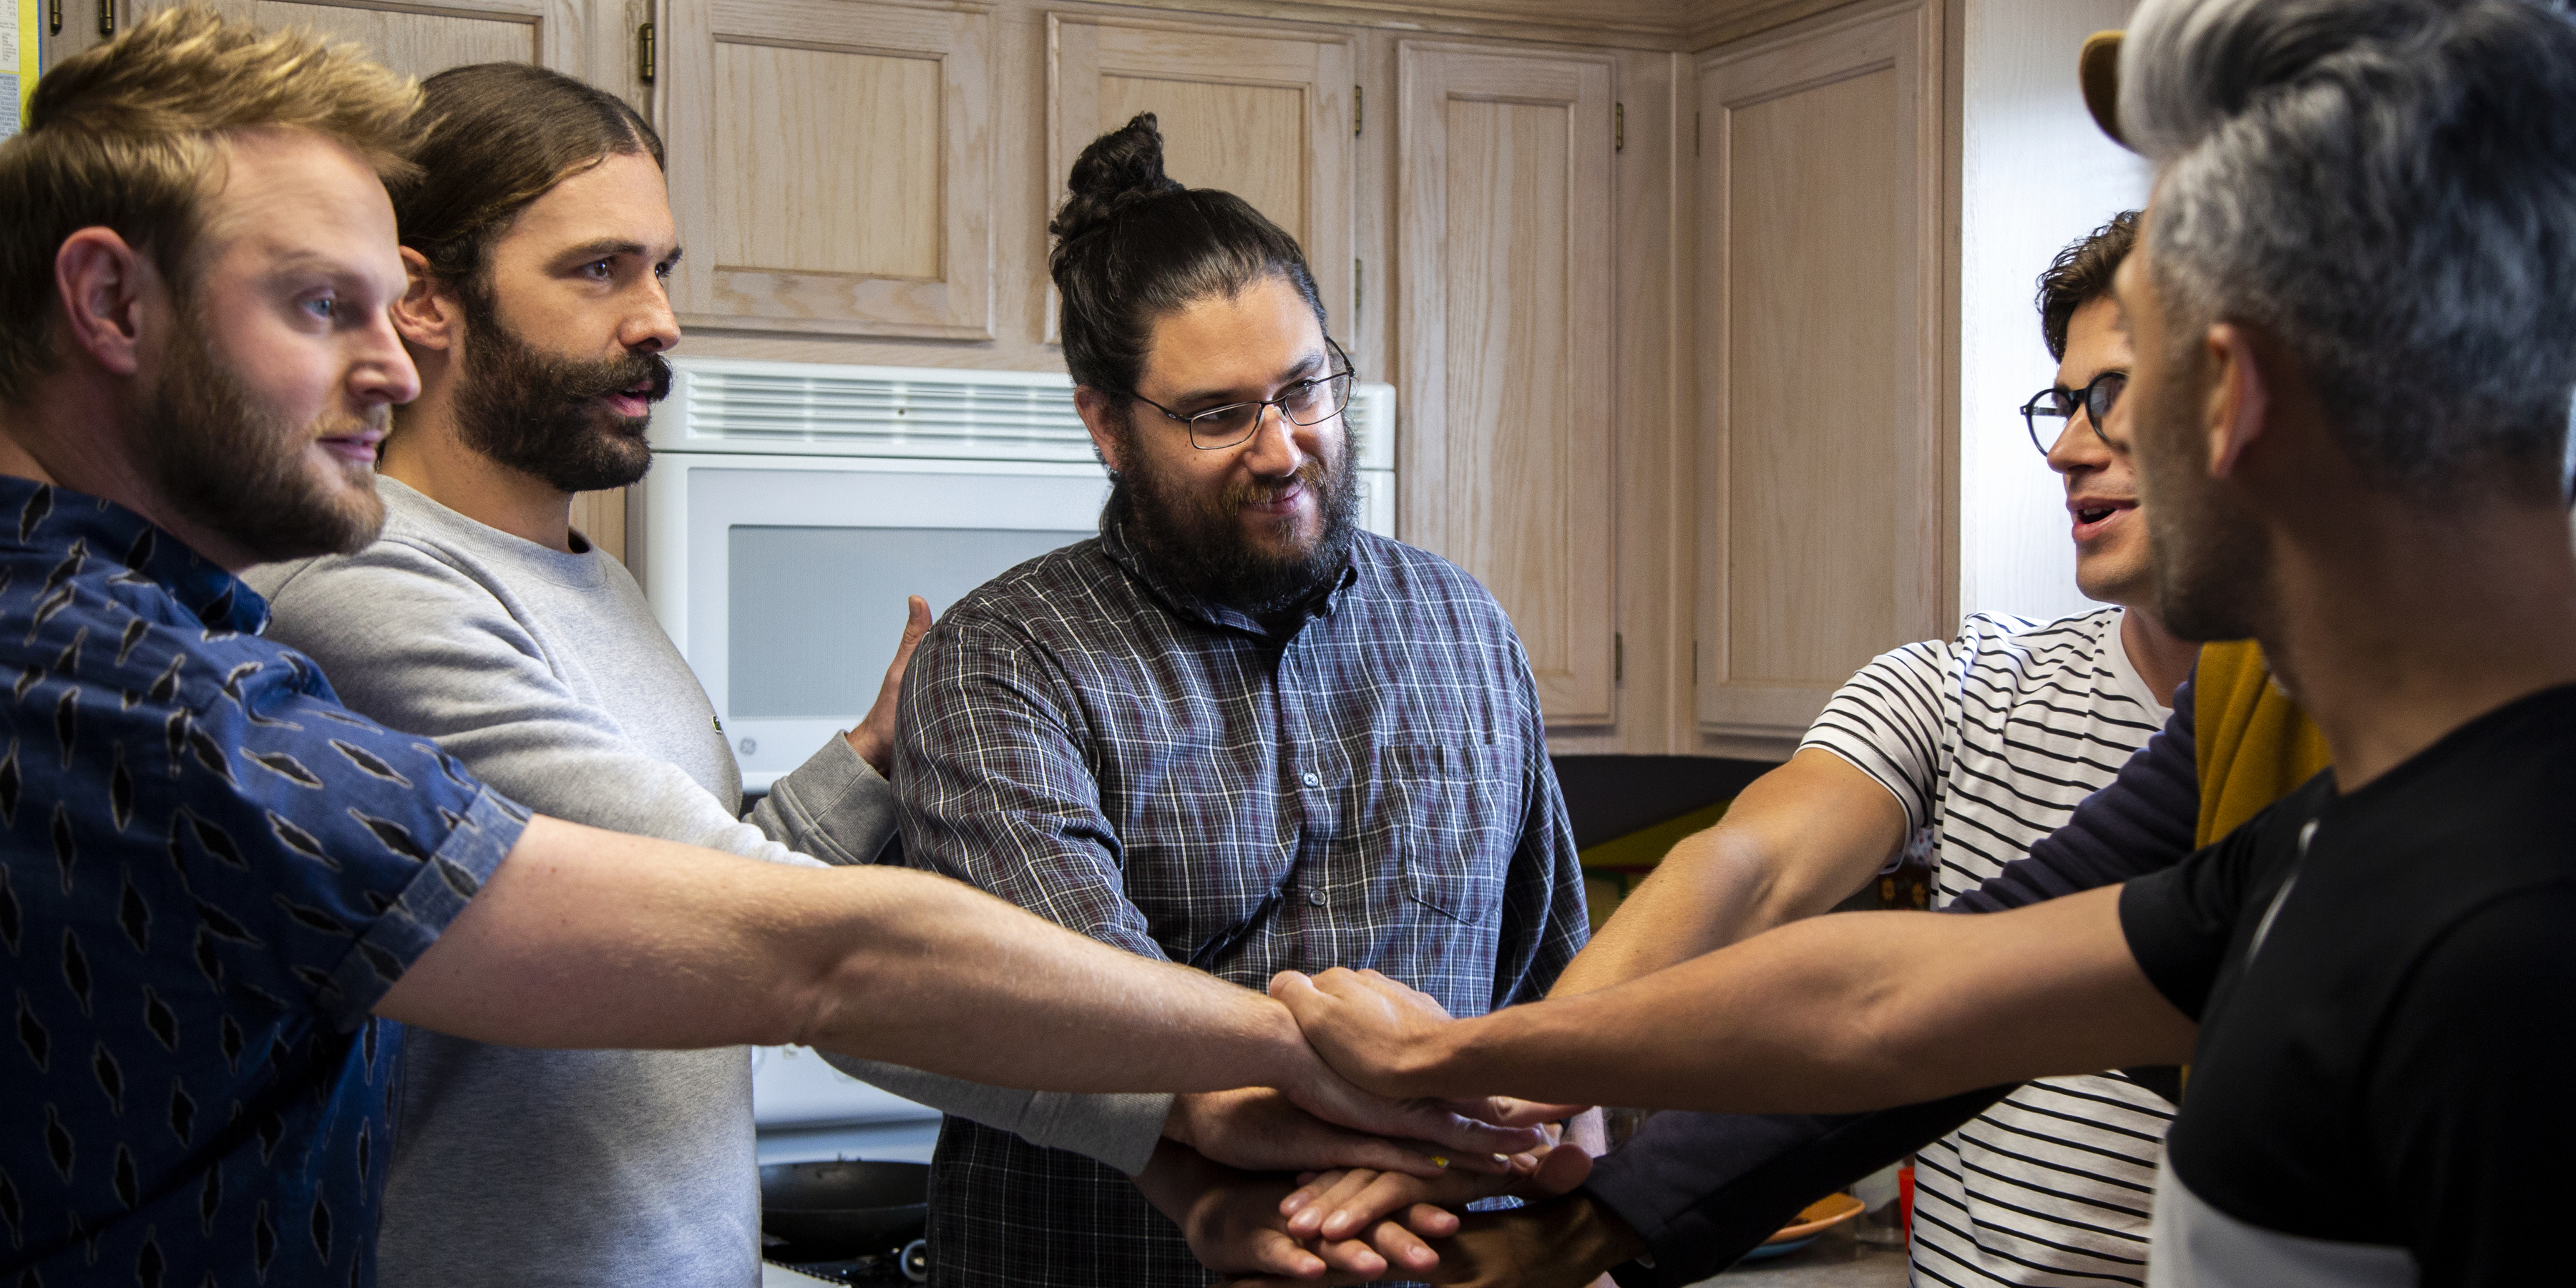 The fab five put their hands together with a male subject in his kitchen